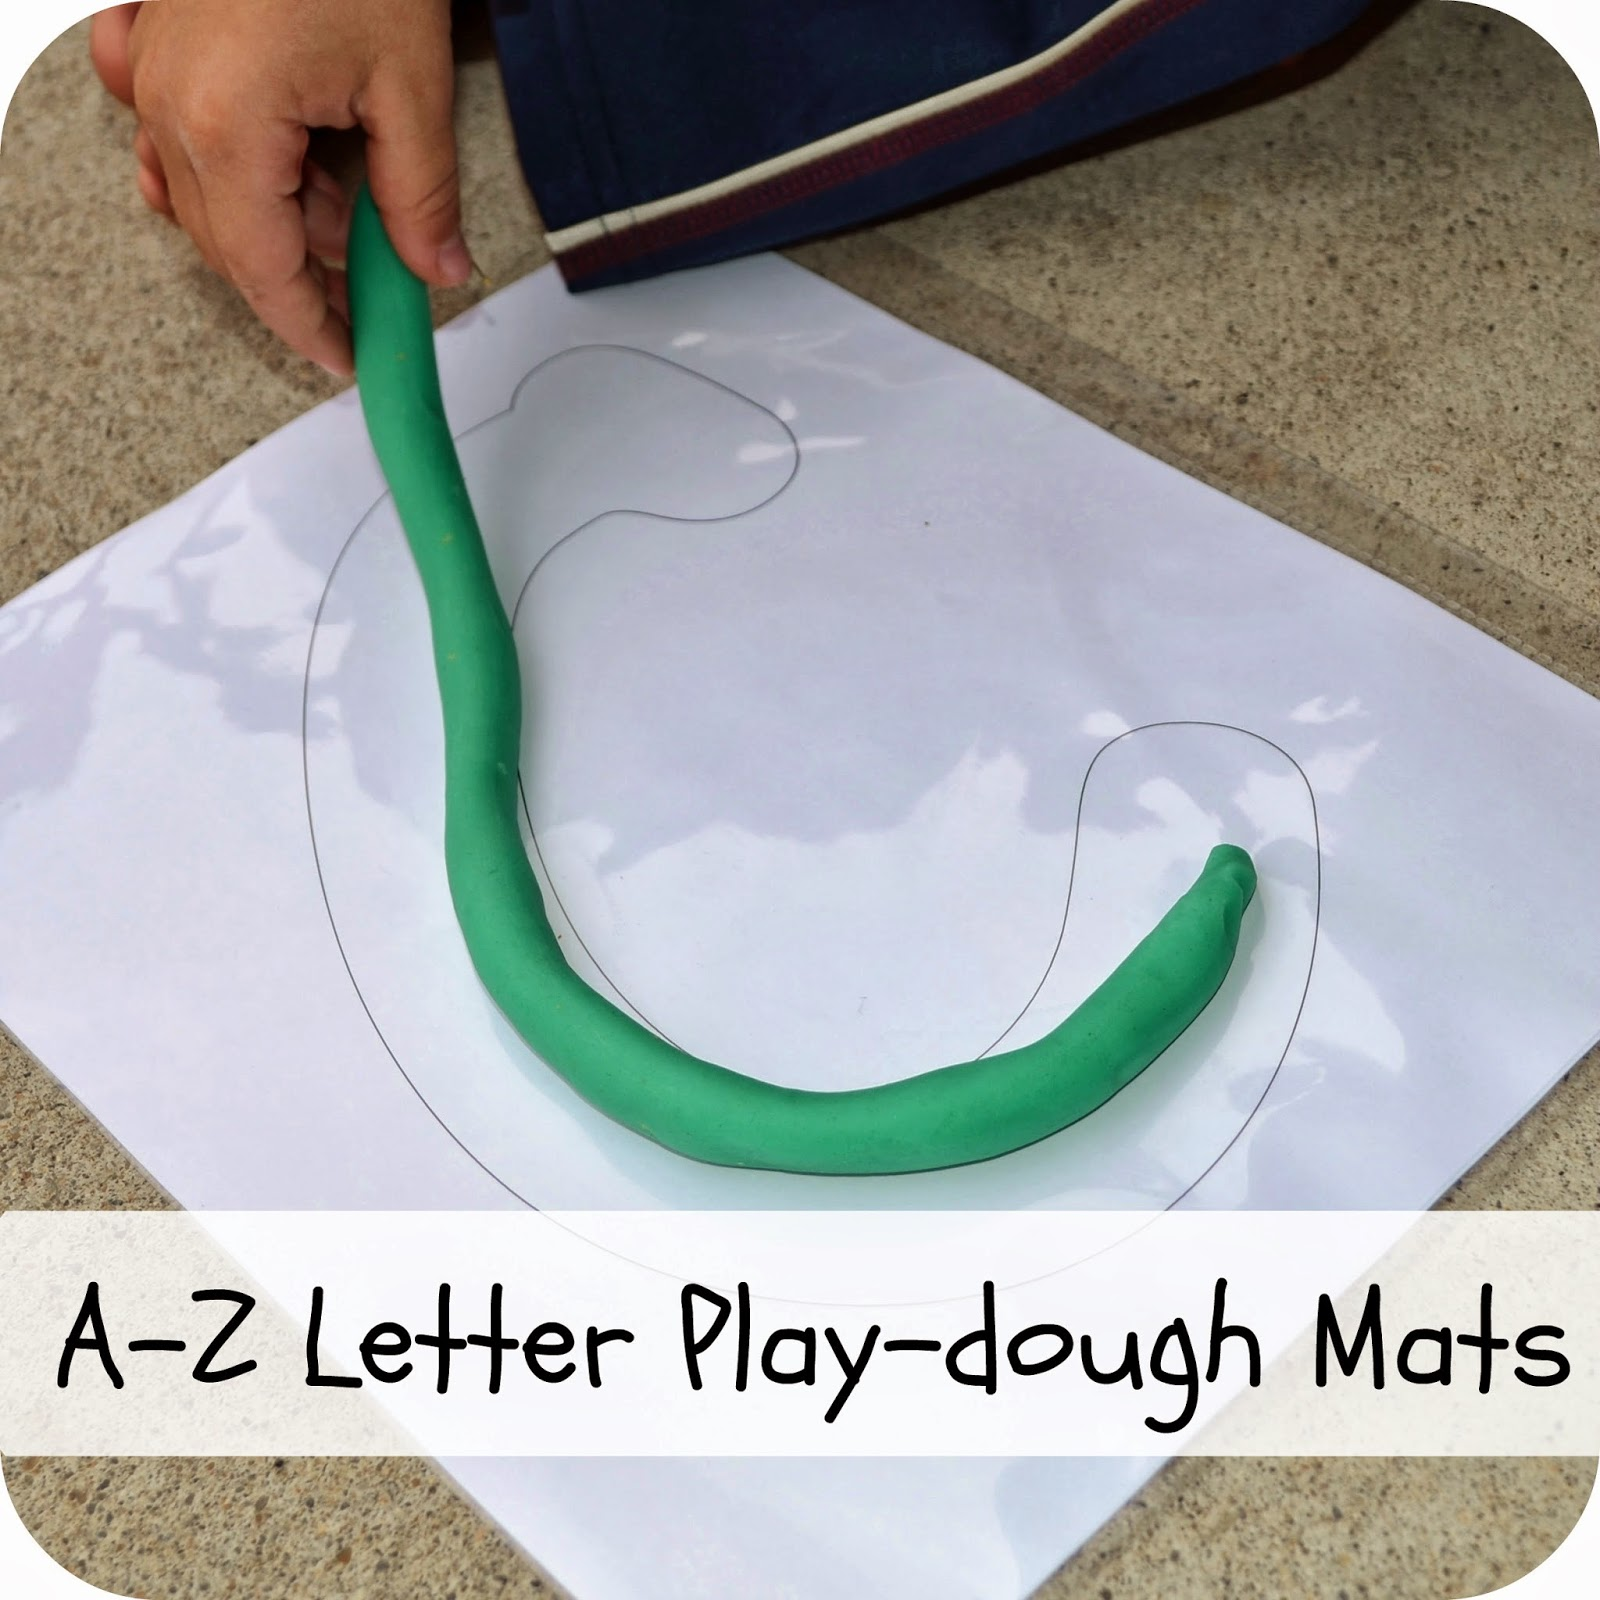 A-Z play-dough mats